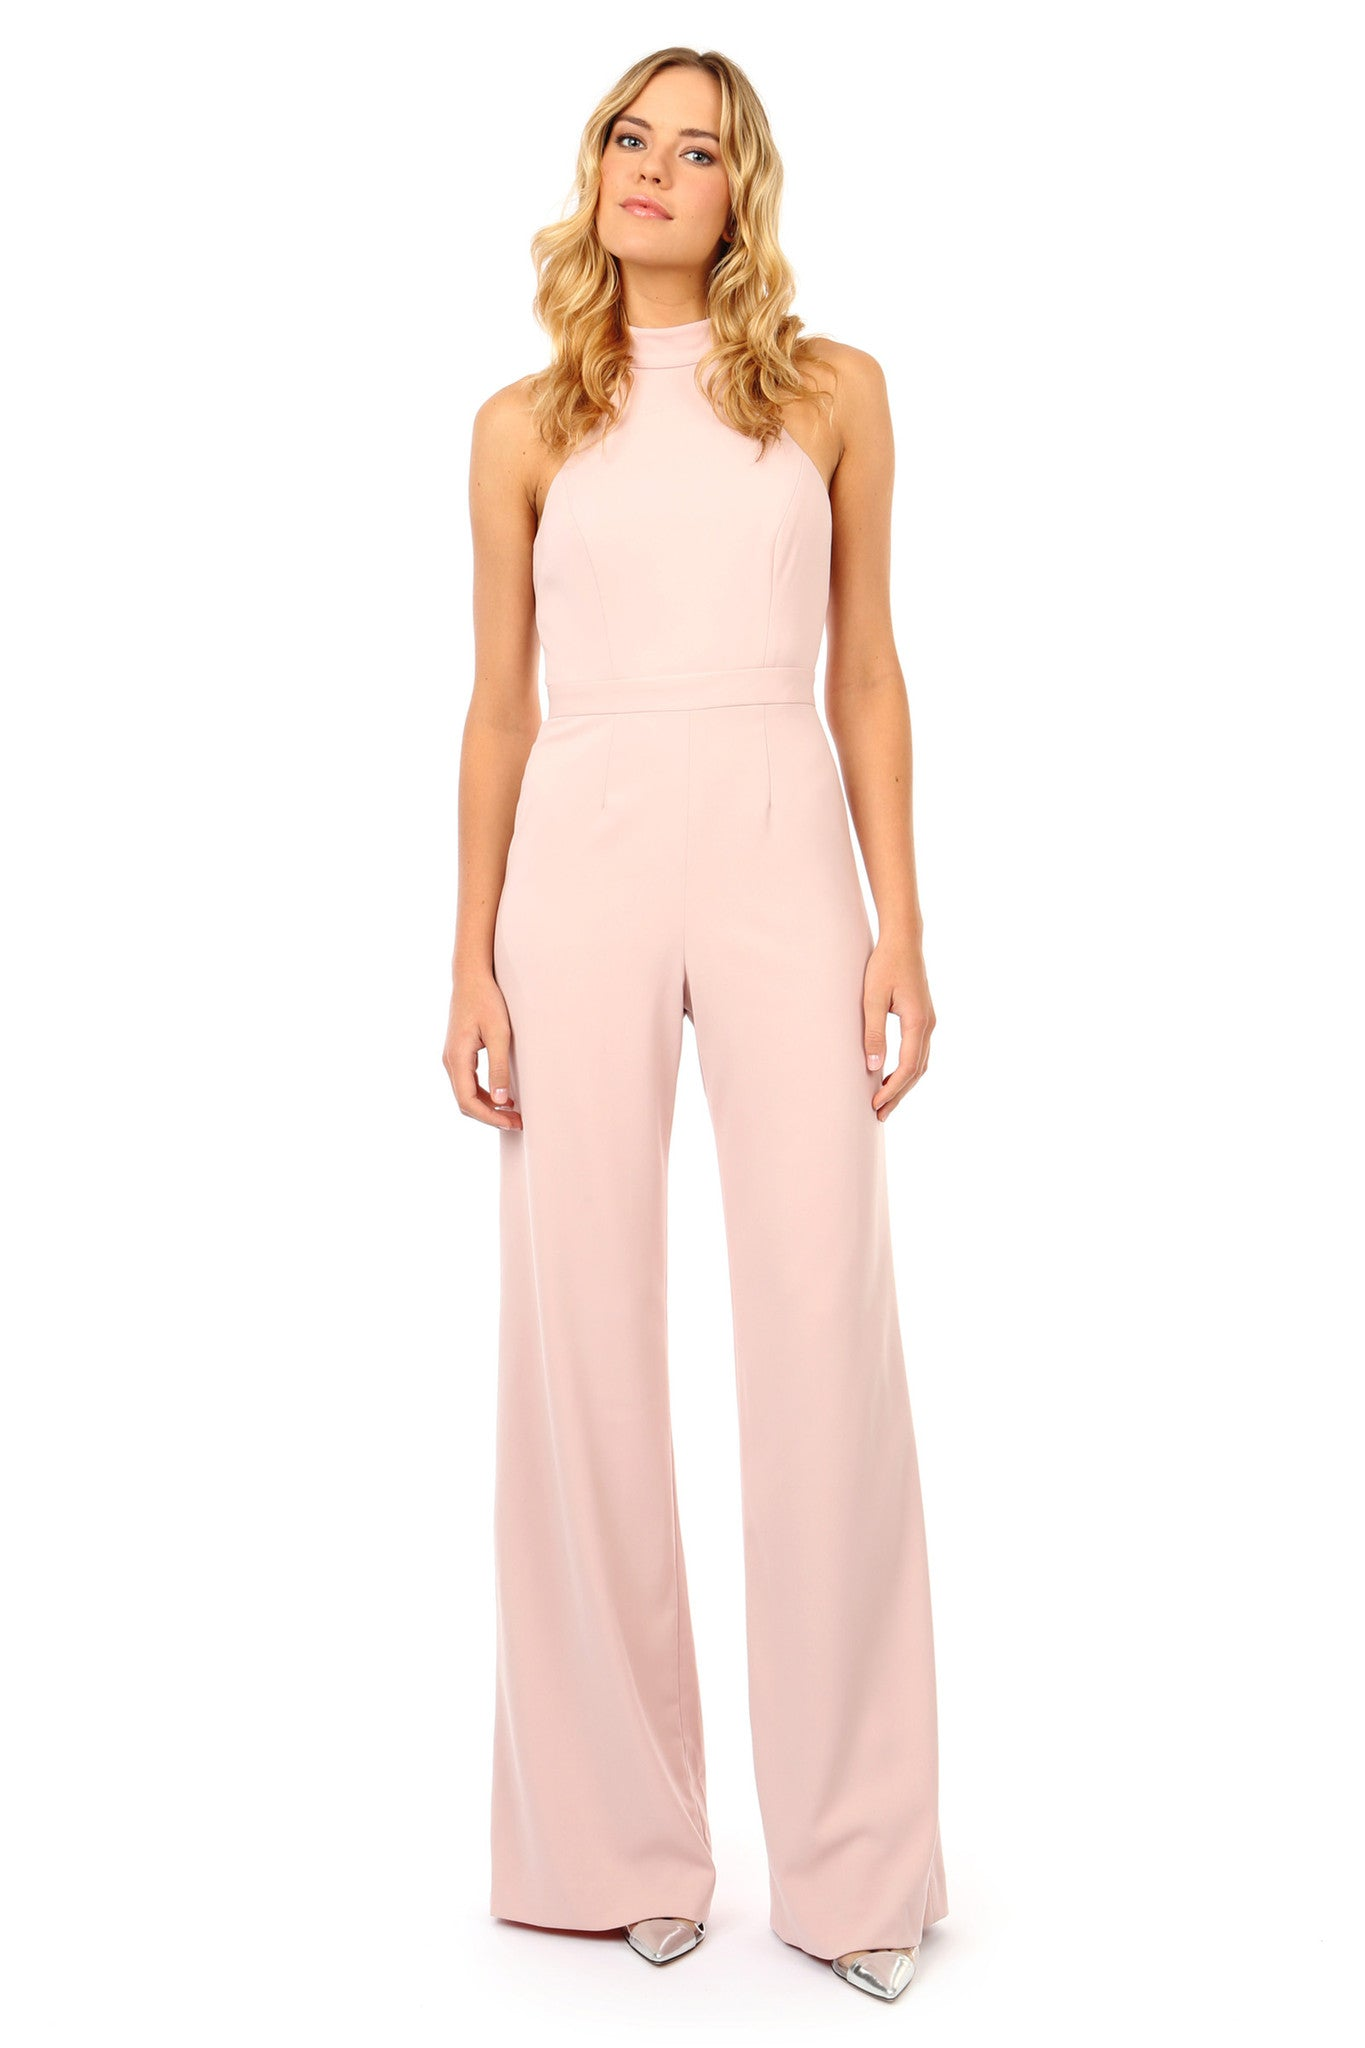 Jay Godfrey Light Pink Halter Neck Jumpsuit - Front View